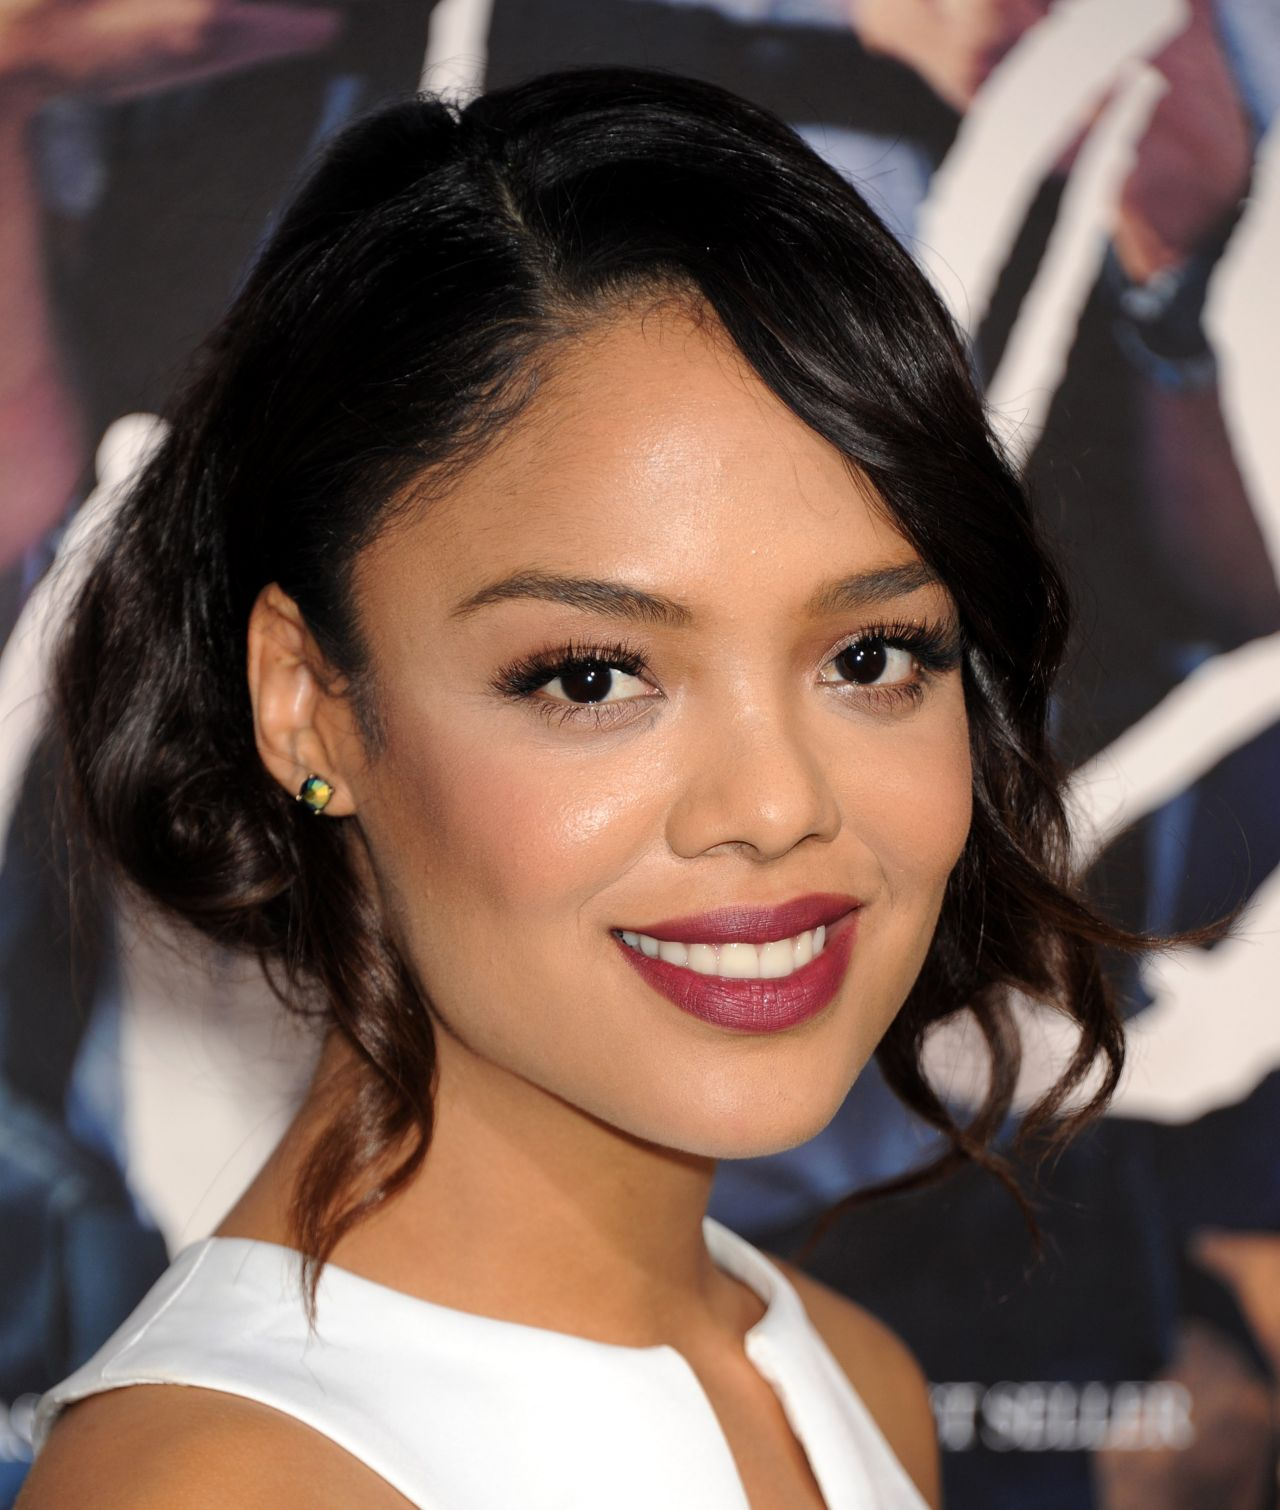 Tessa Thompson Wild Premiere In Los Angeles